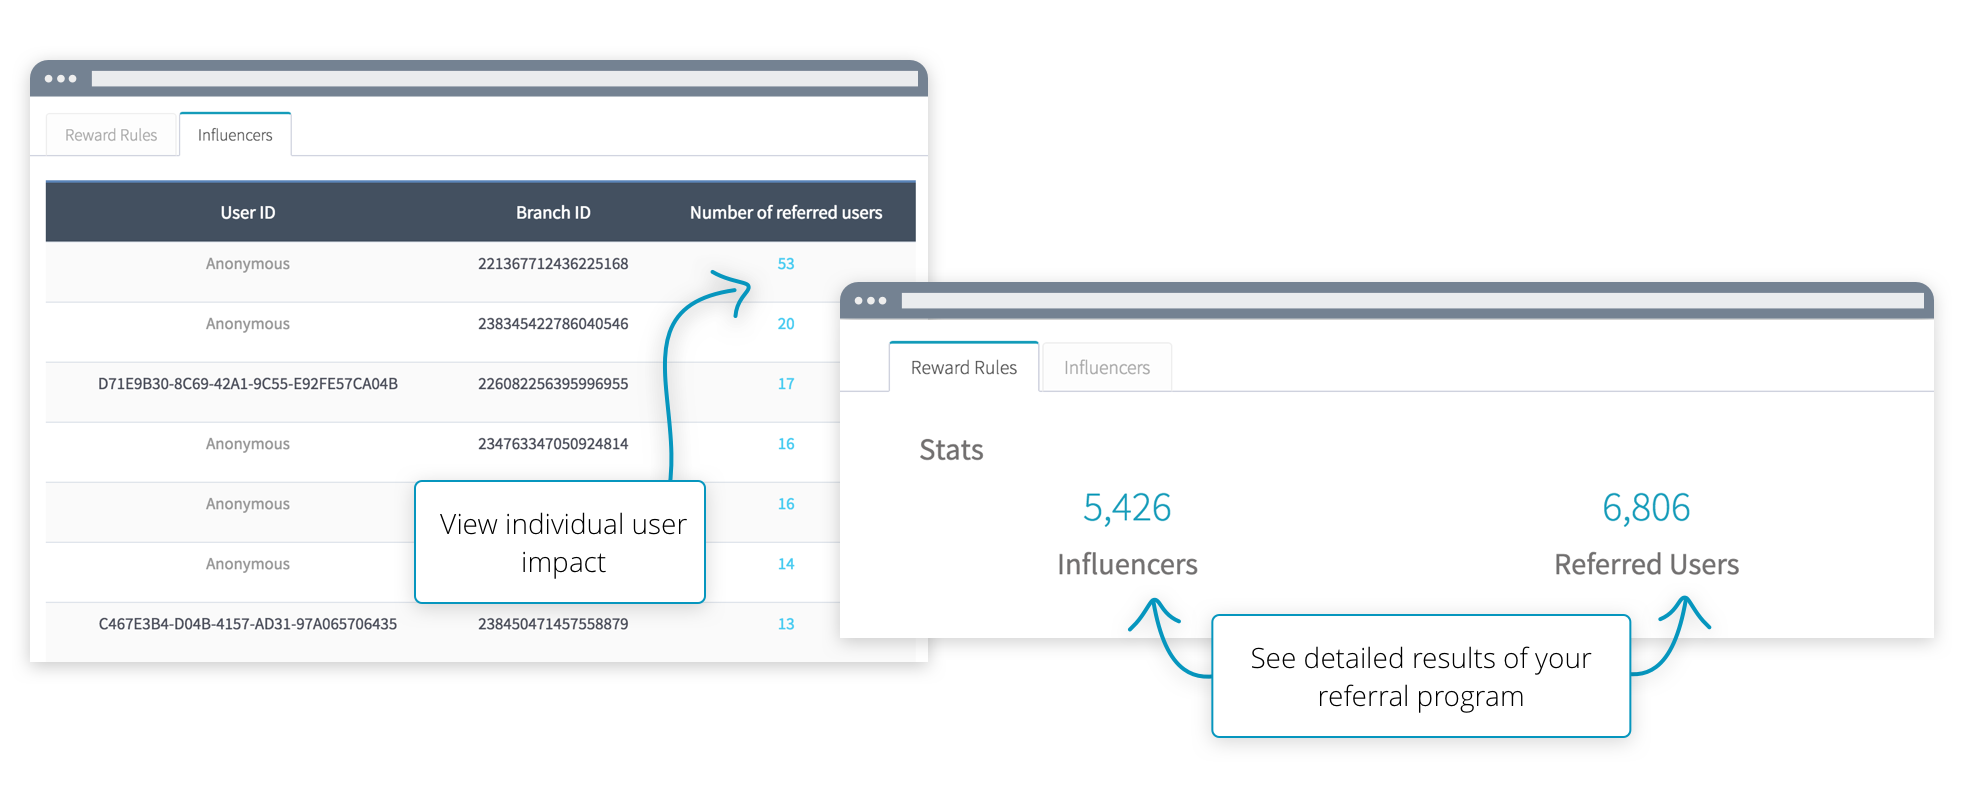 Referral analytics and influencers